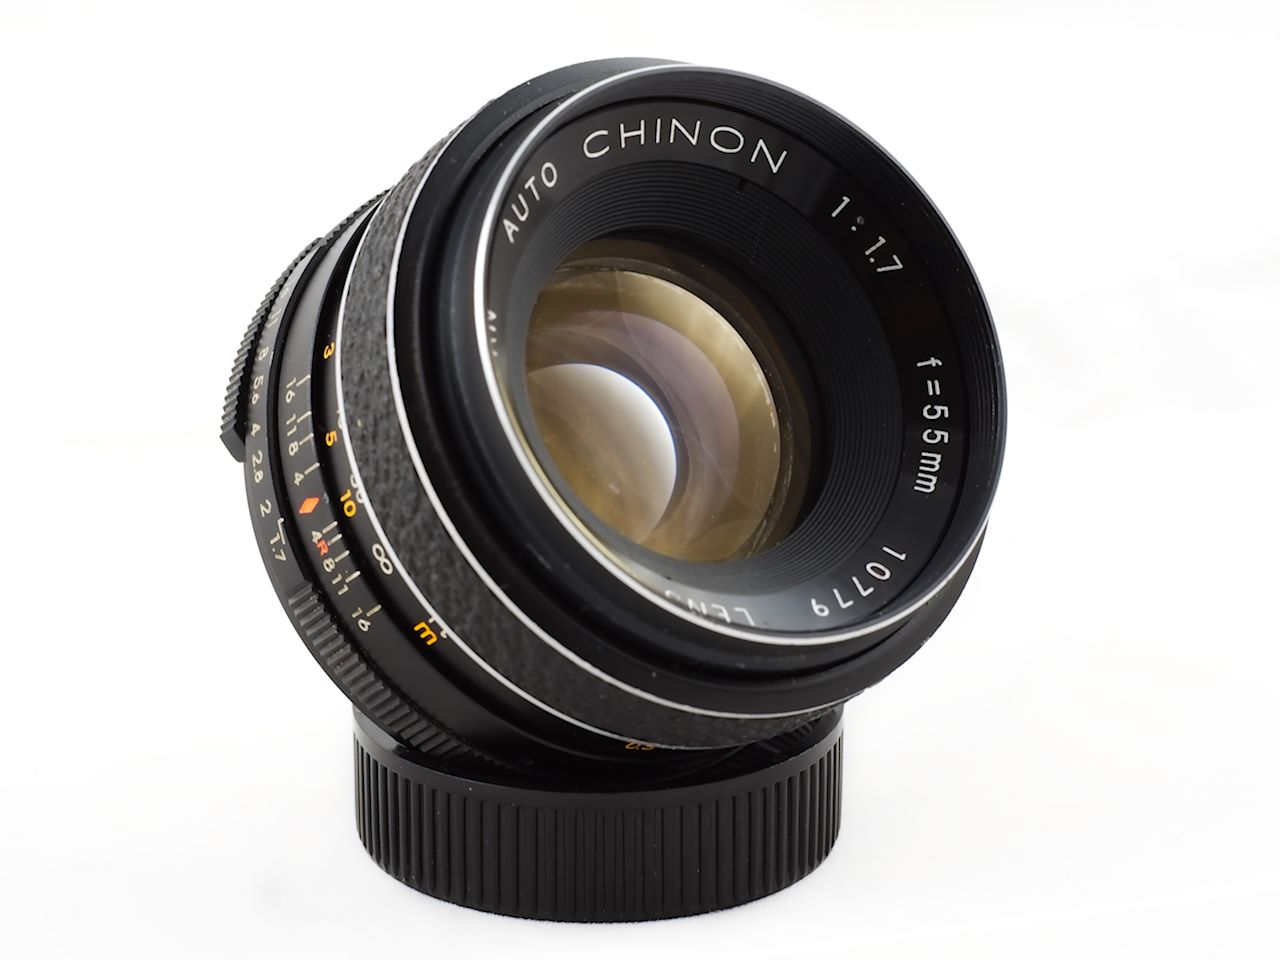 Chinon Auto 55mm f1.7